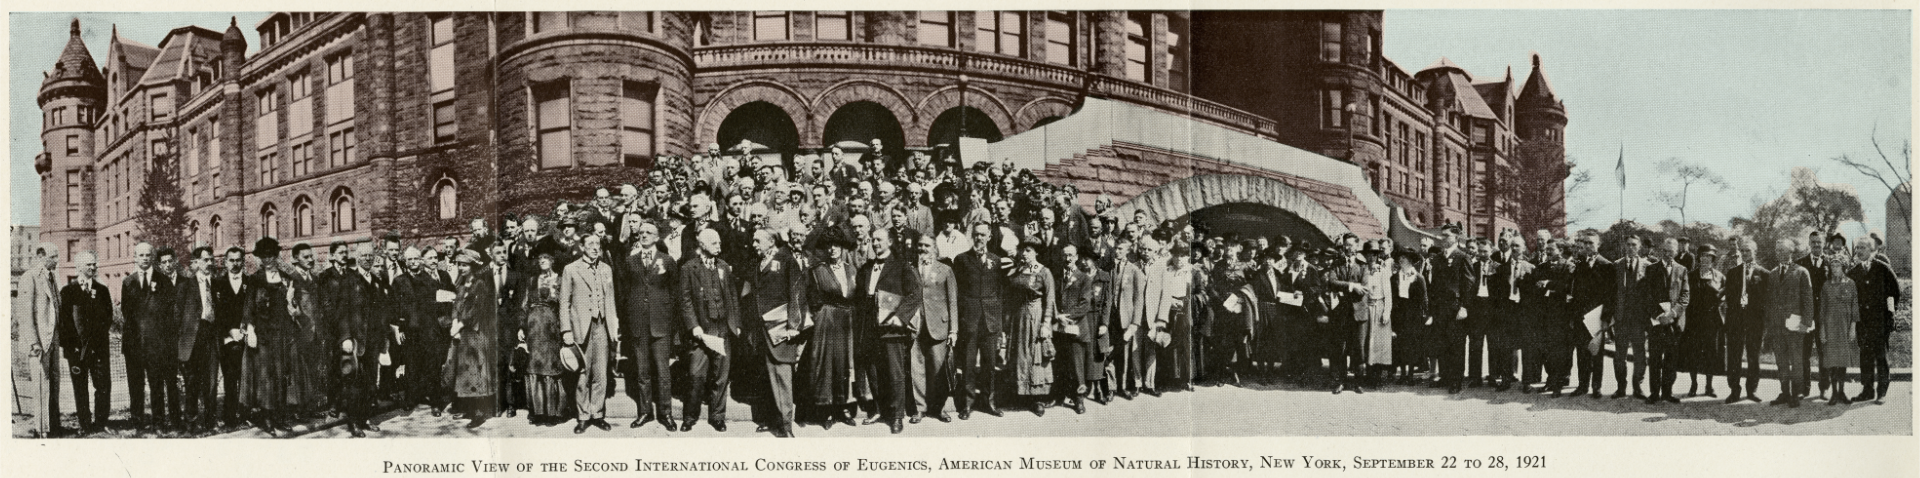 """A partially colorized panoramic photo of participants of the Second International Congress of Eugenics posing in front of the American Museum of Natural History building. In the picture, the building is colorized in light brown shade and the participants are in black and white. There are 151 people in the photo whom are mostly men with some women also visible. All participants are well-dressed in the fashion of that era. The caption of the photo reads """"Panramic View of the Second International Congress of Eugenics, American Museum of Natural History, New York, September 22 to 28, 2921""""."""